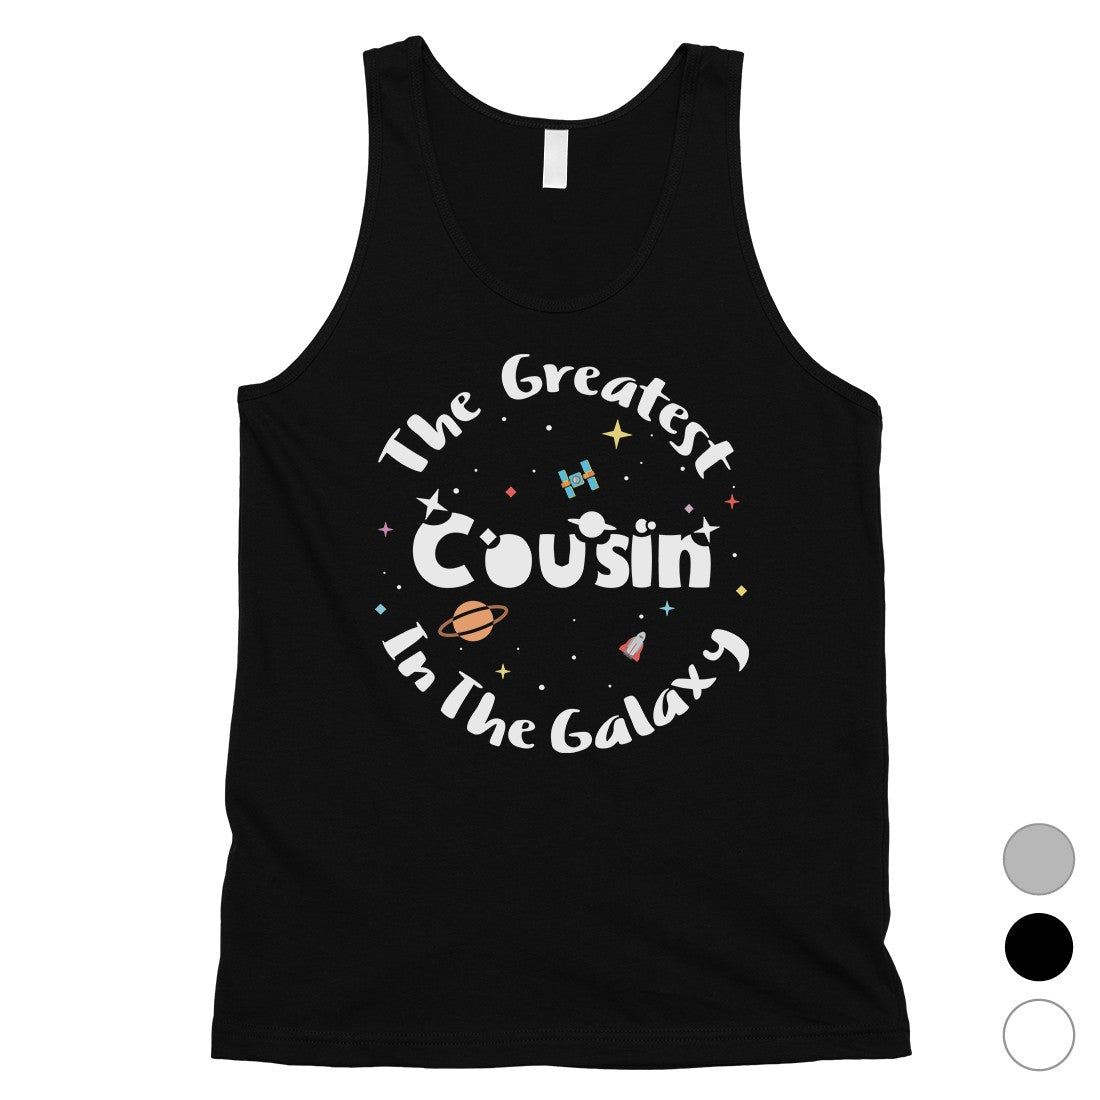 The Greatest Cousin Mens Tank Top Best Birthday Gift